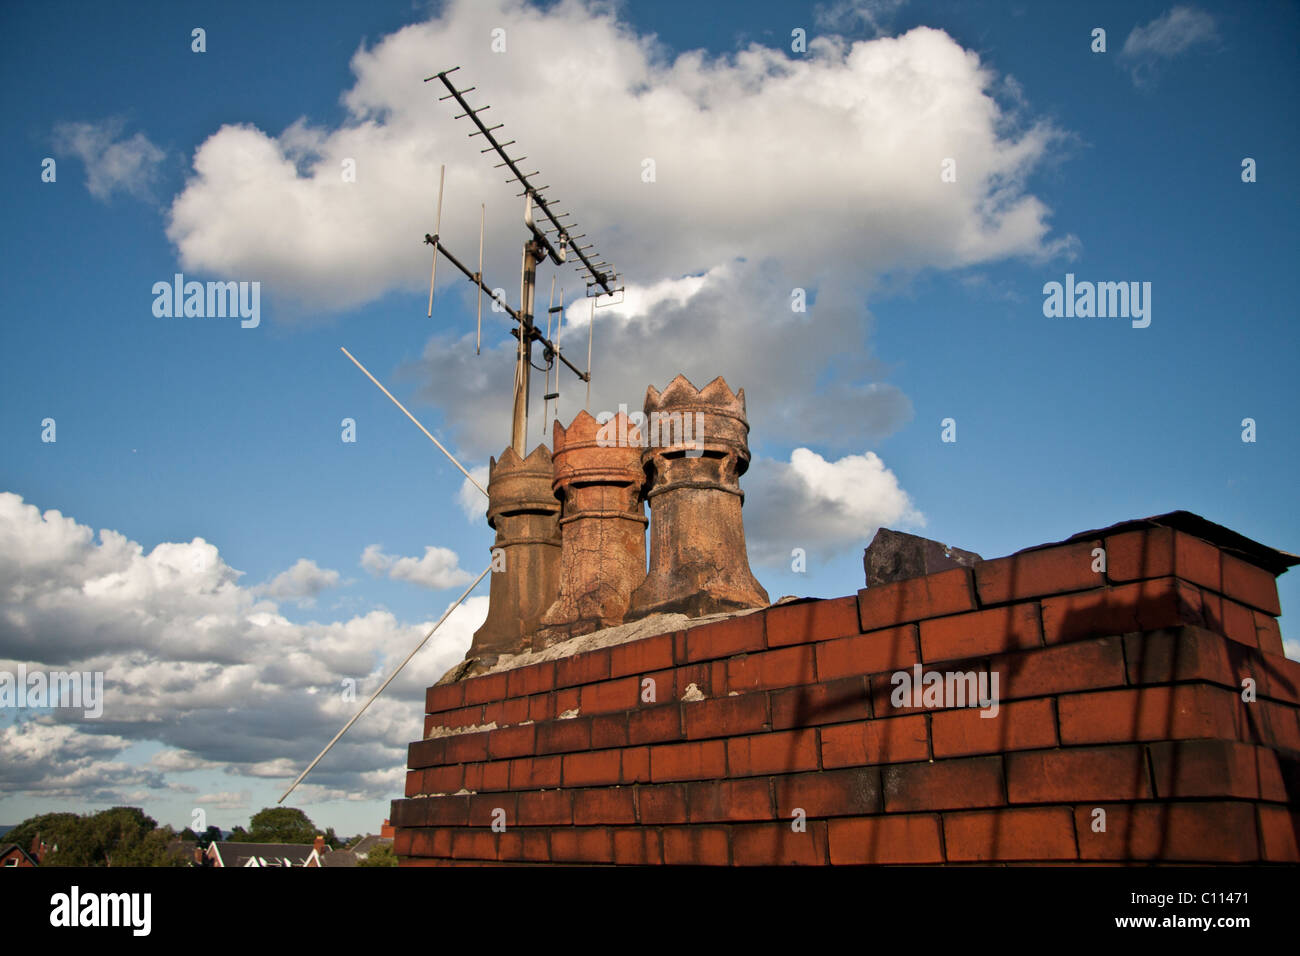 English chimneys on red bricks in a blue cloudy sky - Stock Image